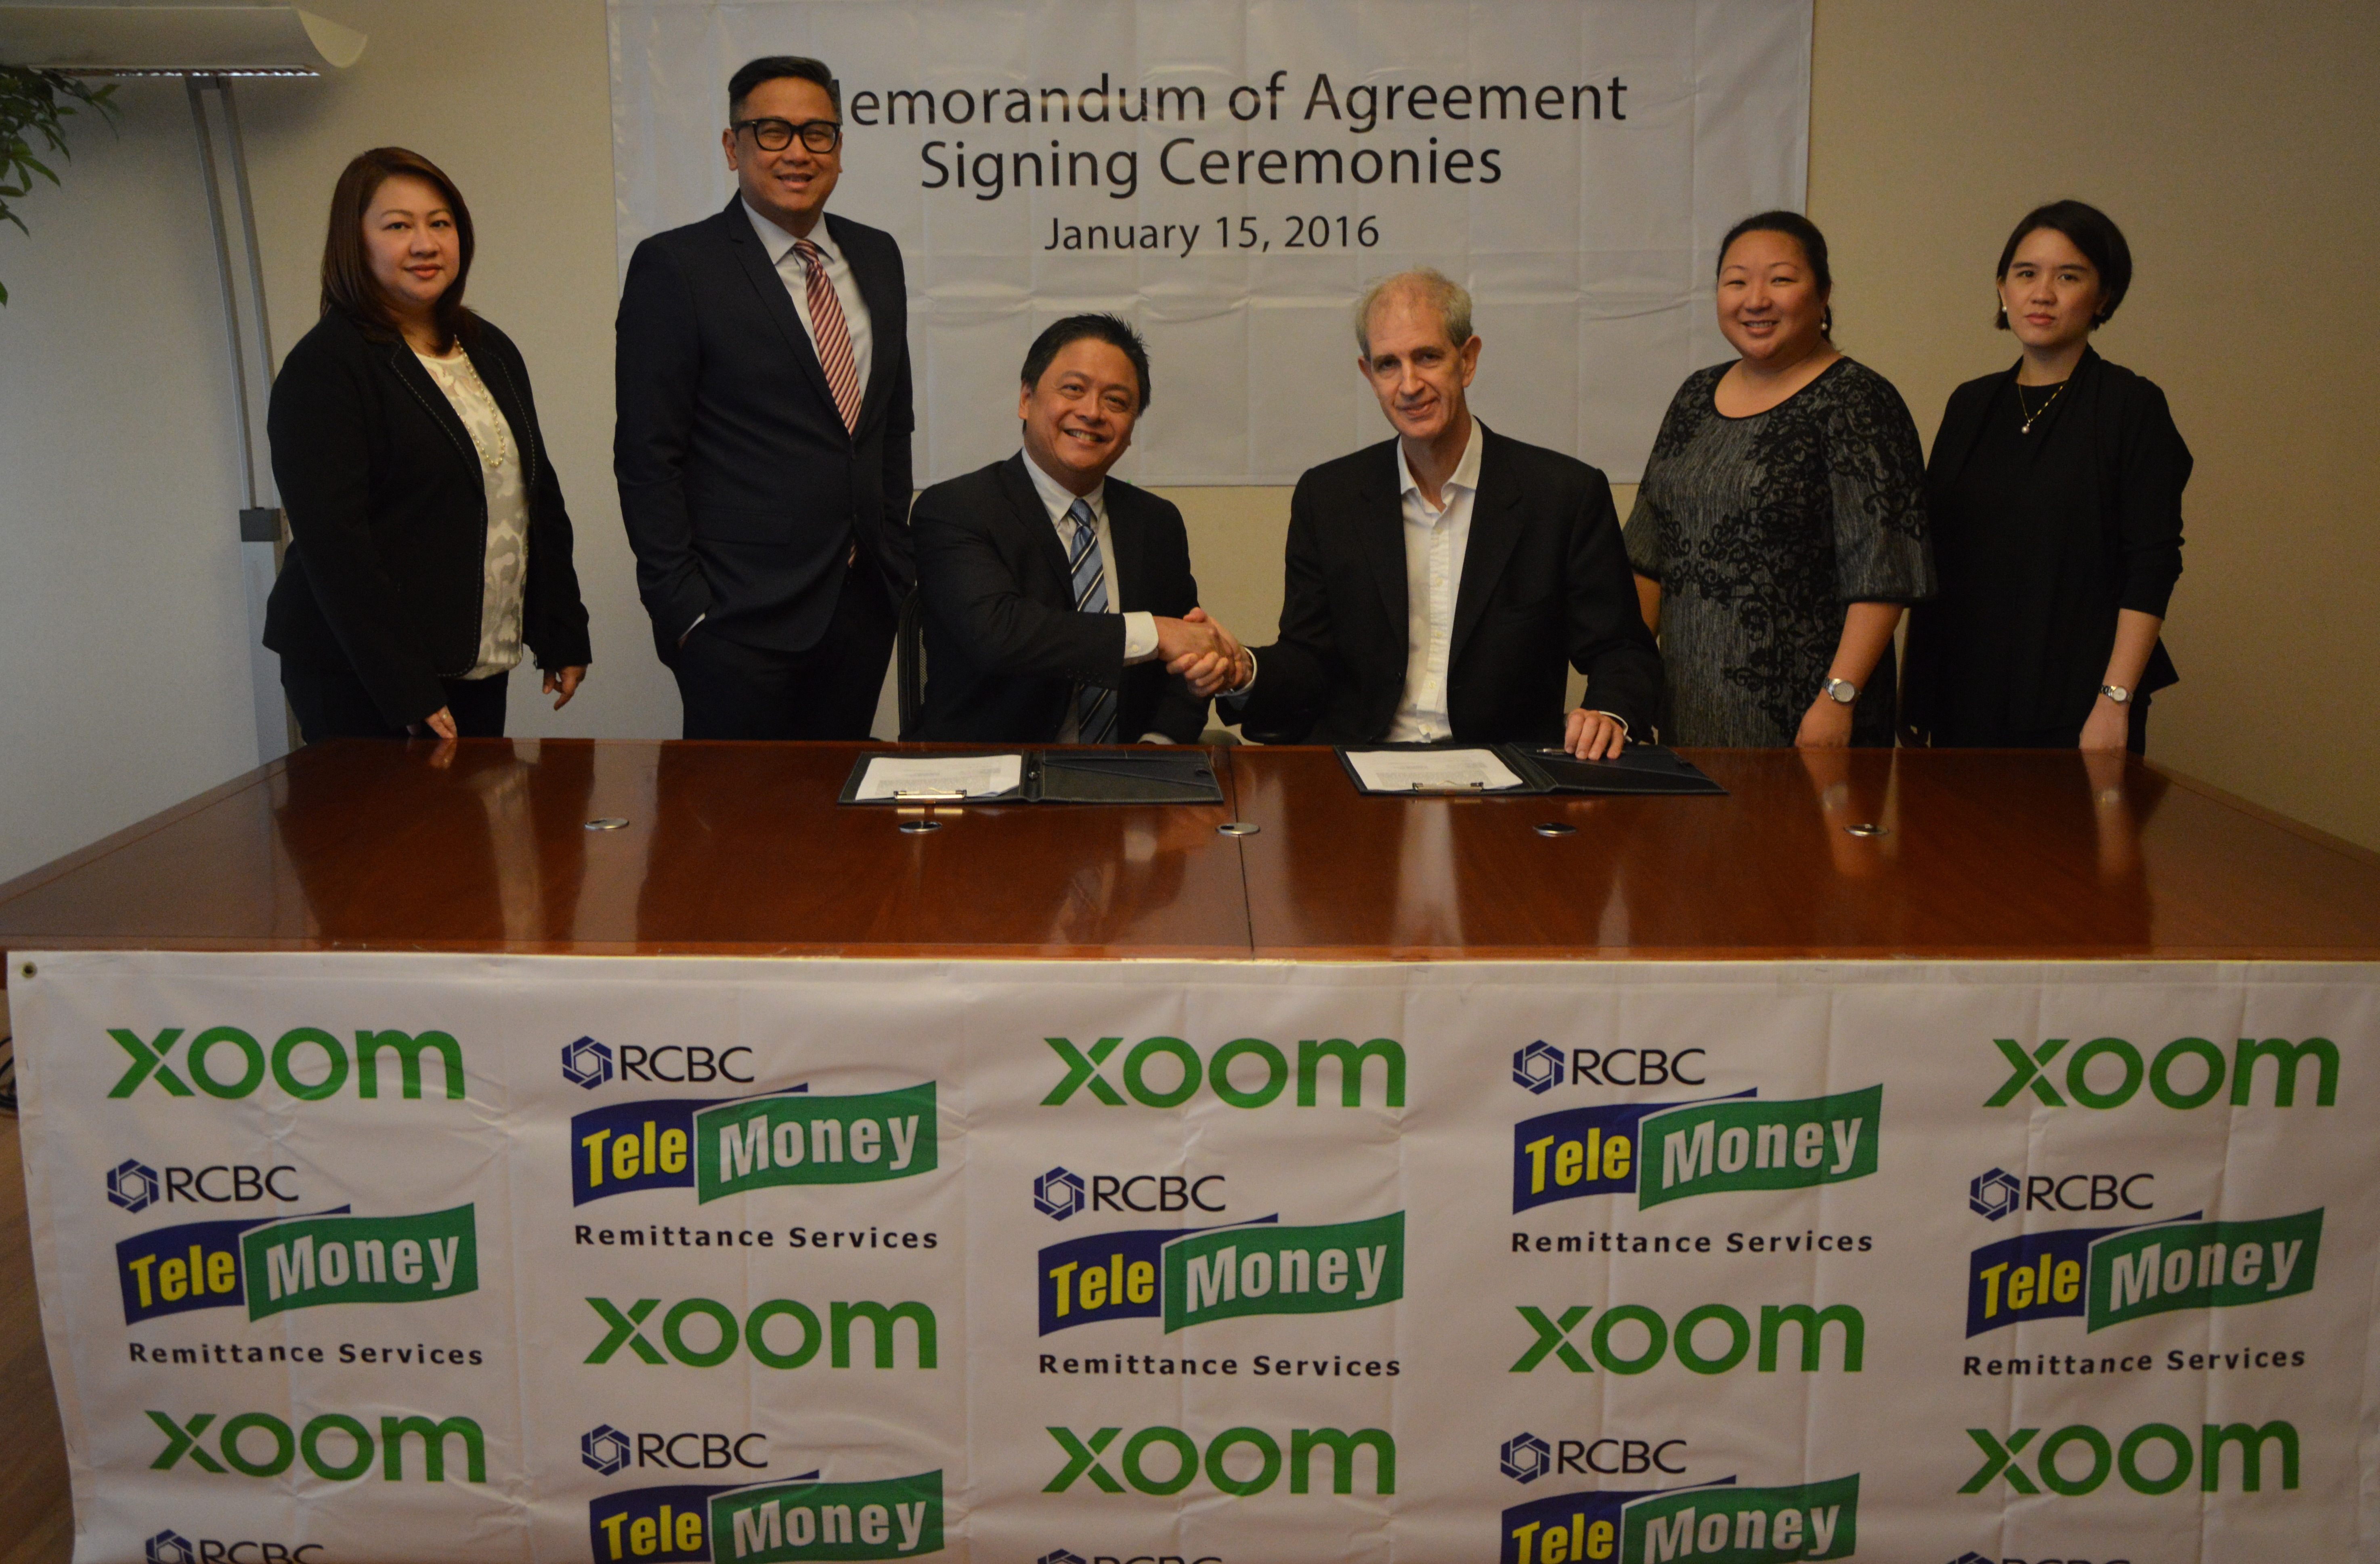 Xoom Launches Instant Deposit Service to all RCBC Accounts in the